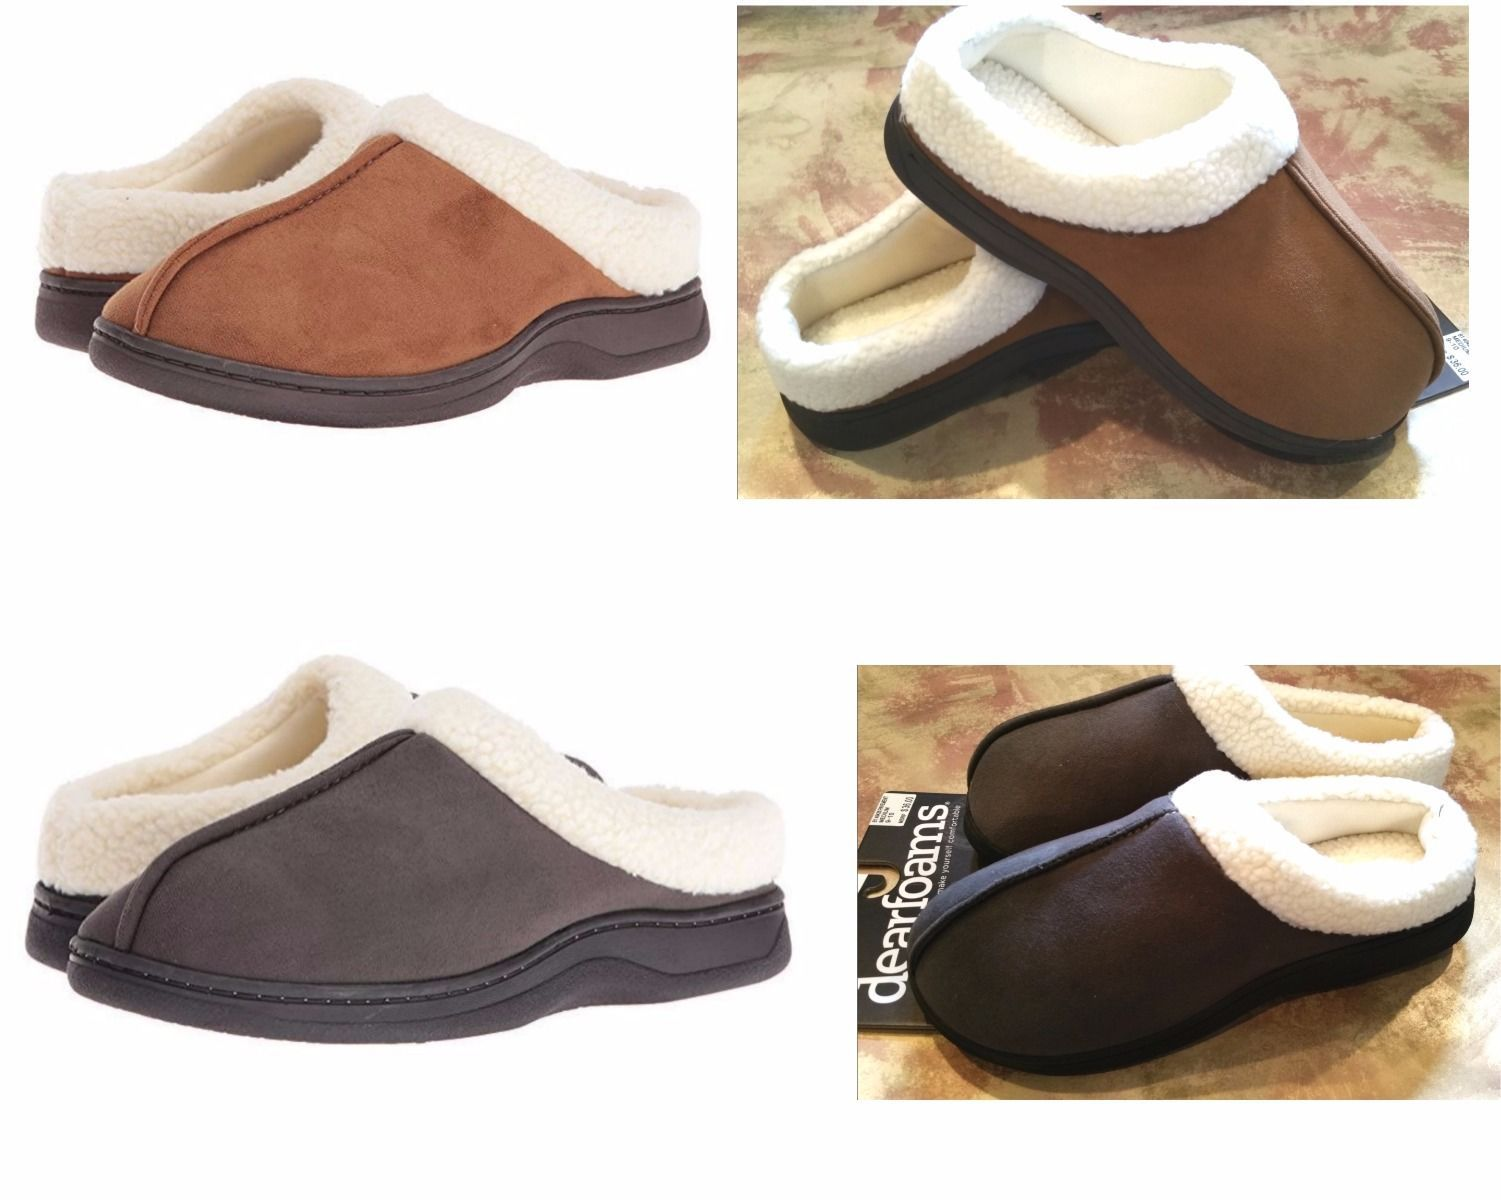 c619530ad S l1600. S l1600. Previous. Dearfoams Mens Faux Suede Sherpa Clog Slippers  MicroFiber-Indoor/Outdoor $36 New